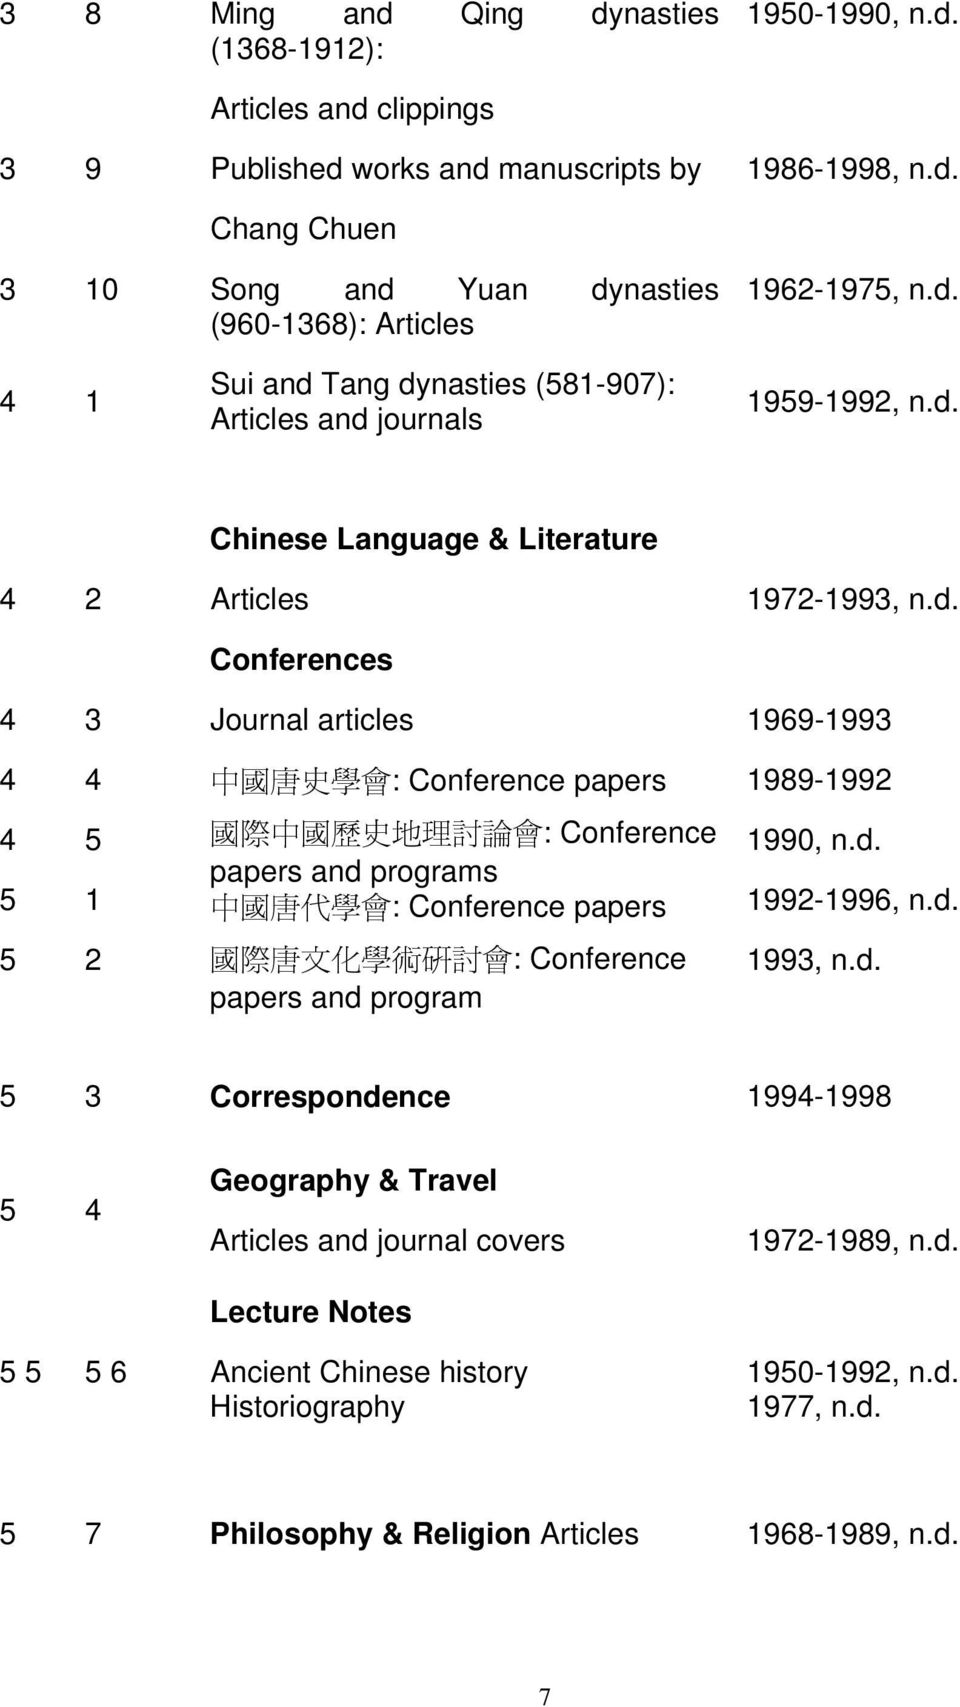 d. 1992-1996, n.d. 2 國 際 唐 文 化 學 術 研 討 會 : Conference papers and program 1993, n.d. 3 Correspondence 199-1998 Geography & Travel Articles and journal covers Lecture Notes 1972-1989, n.d. 6 Ancient Chinese history Historiography 190-1992, n.